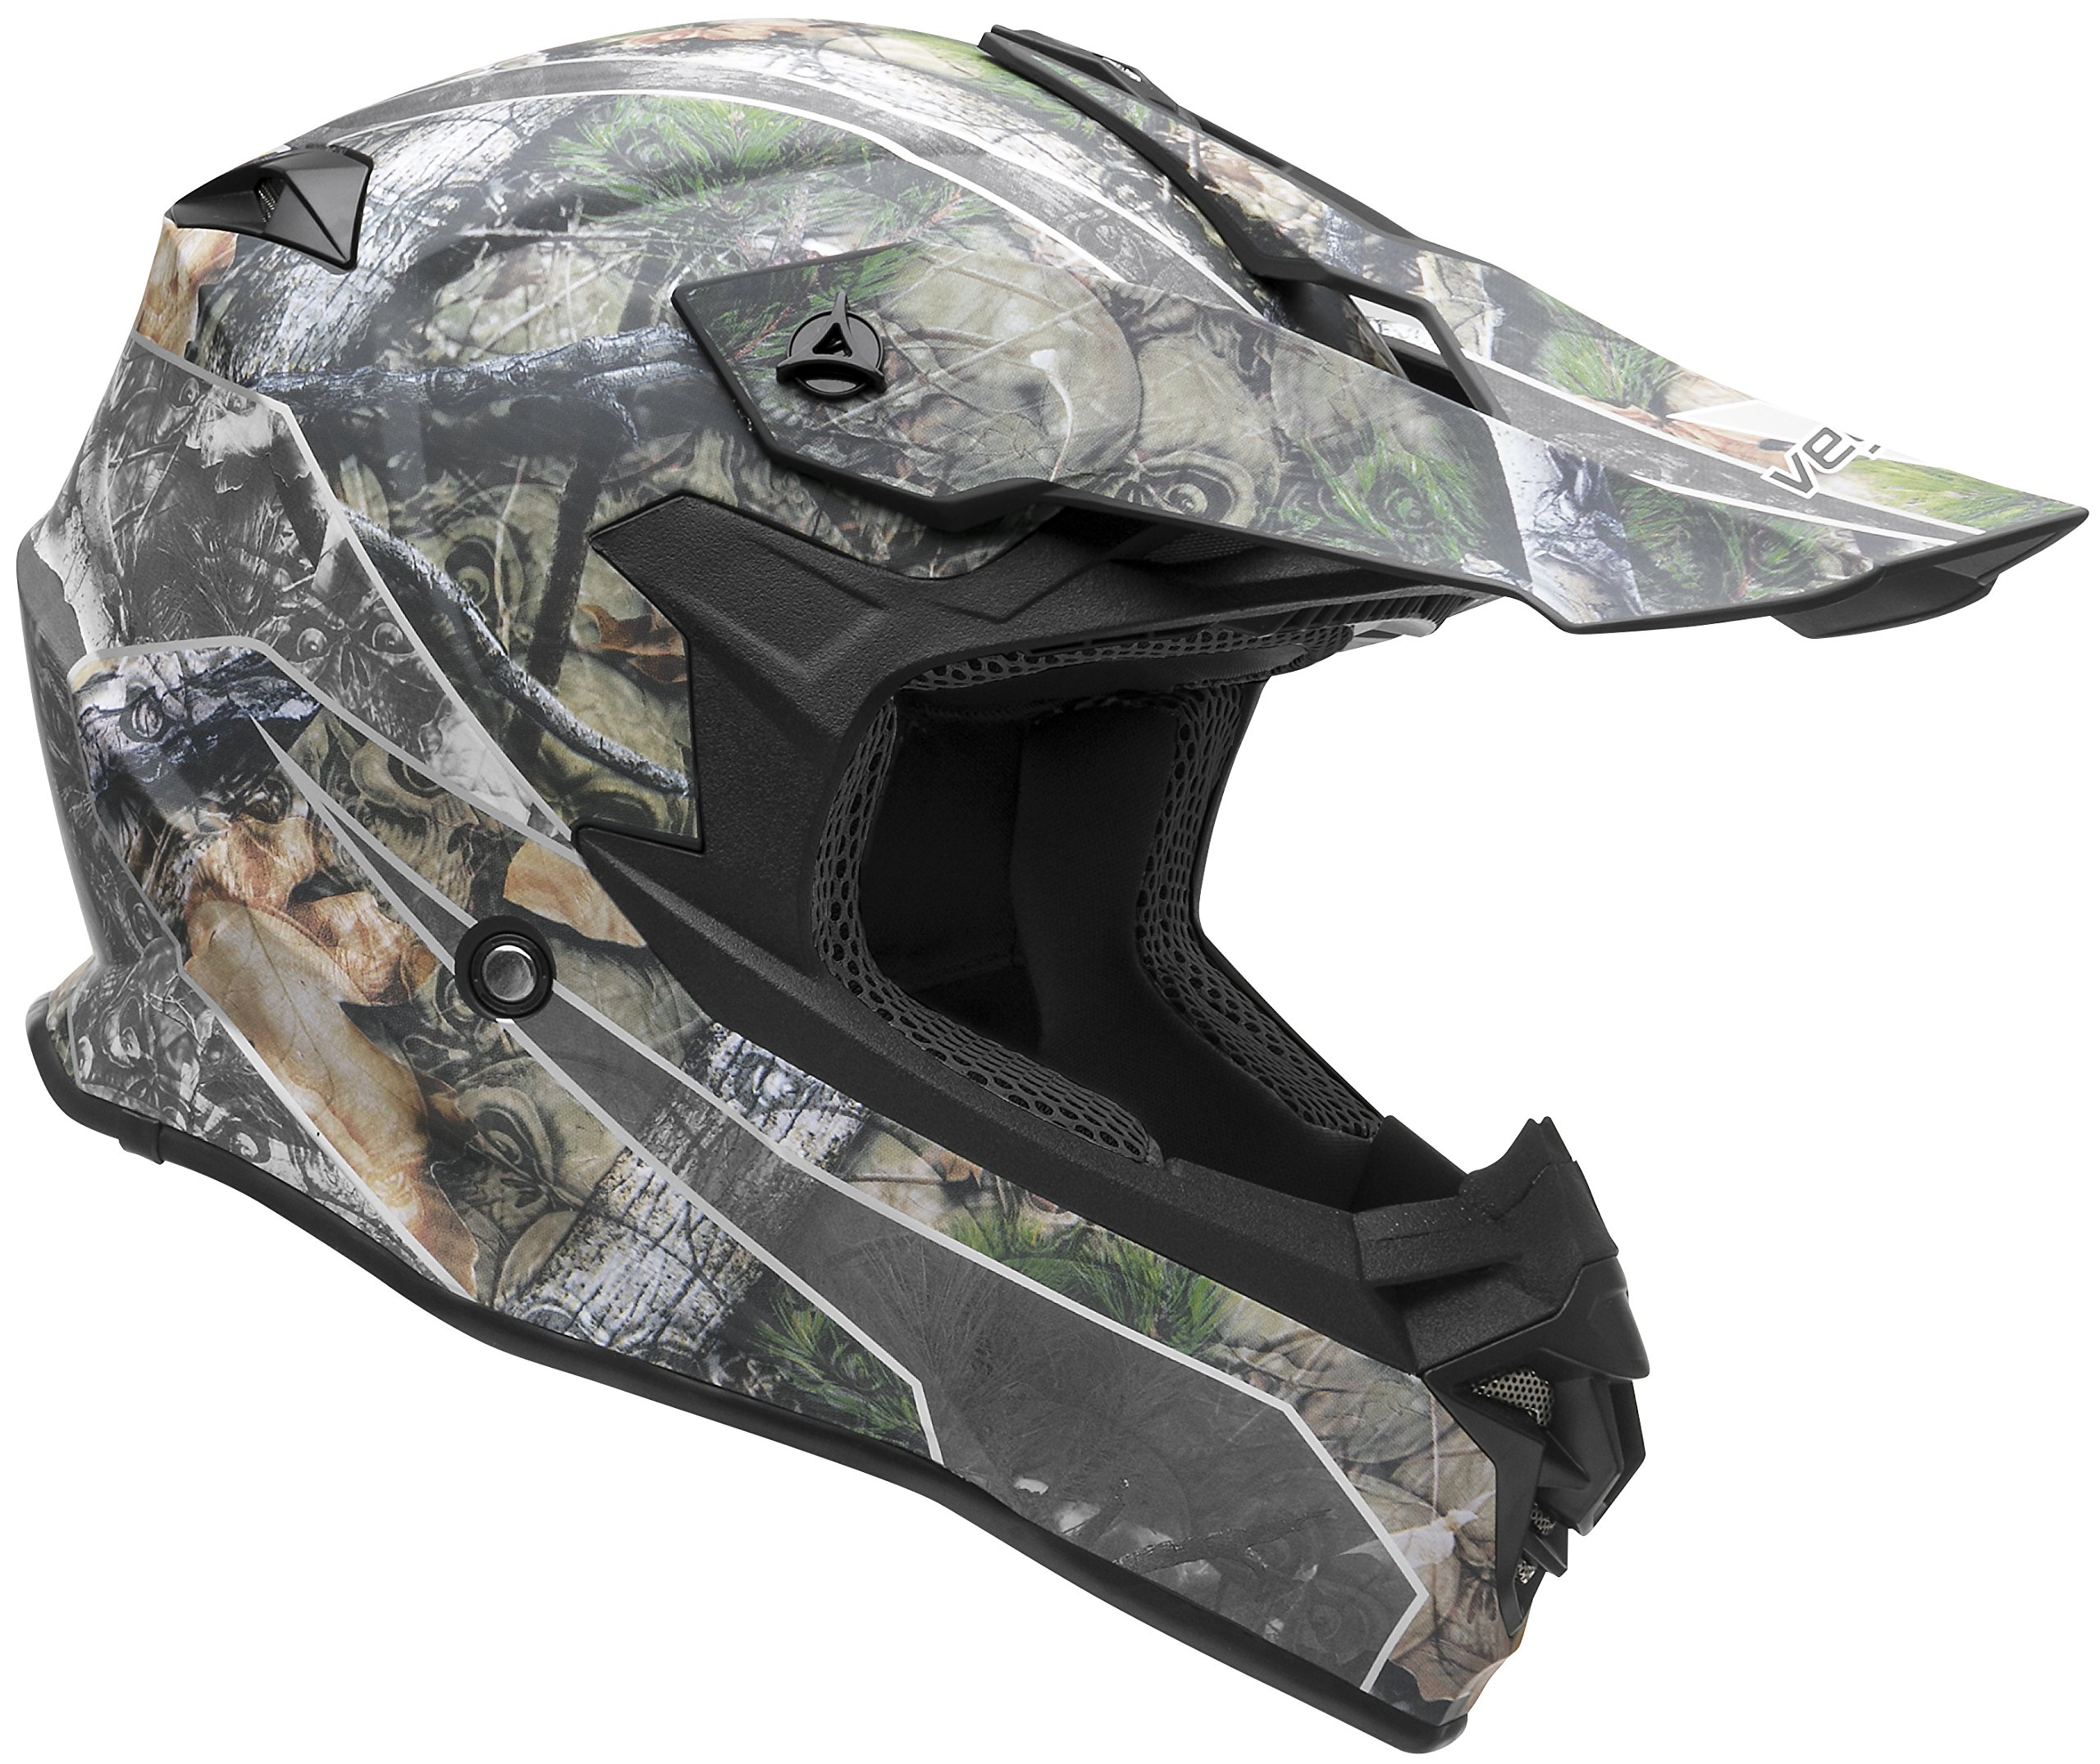 Vega Helmets VF1 Lightweight Dirt Bike Helmet – Off-Road Full Face Helmet for ATV Motocross MX Enduro Quad Sport, 5 Year Warranty (Skull Camo, X-Large) by Vega Helmets